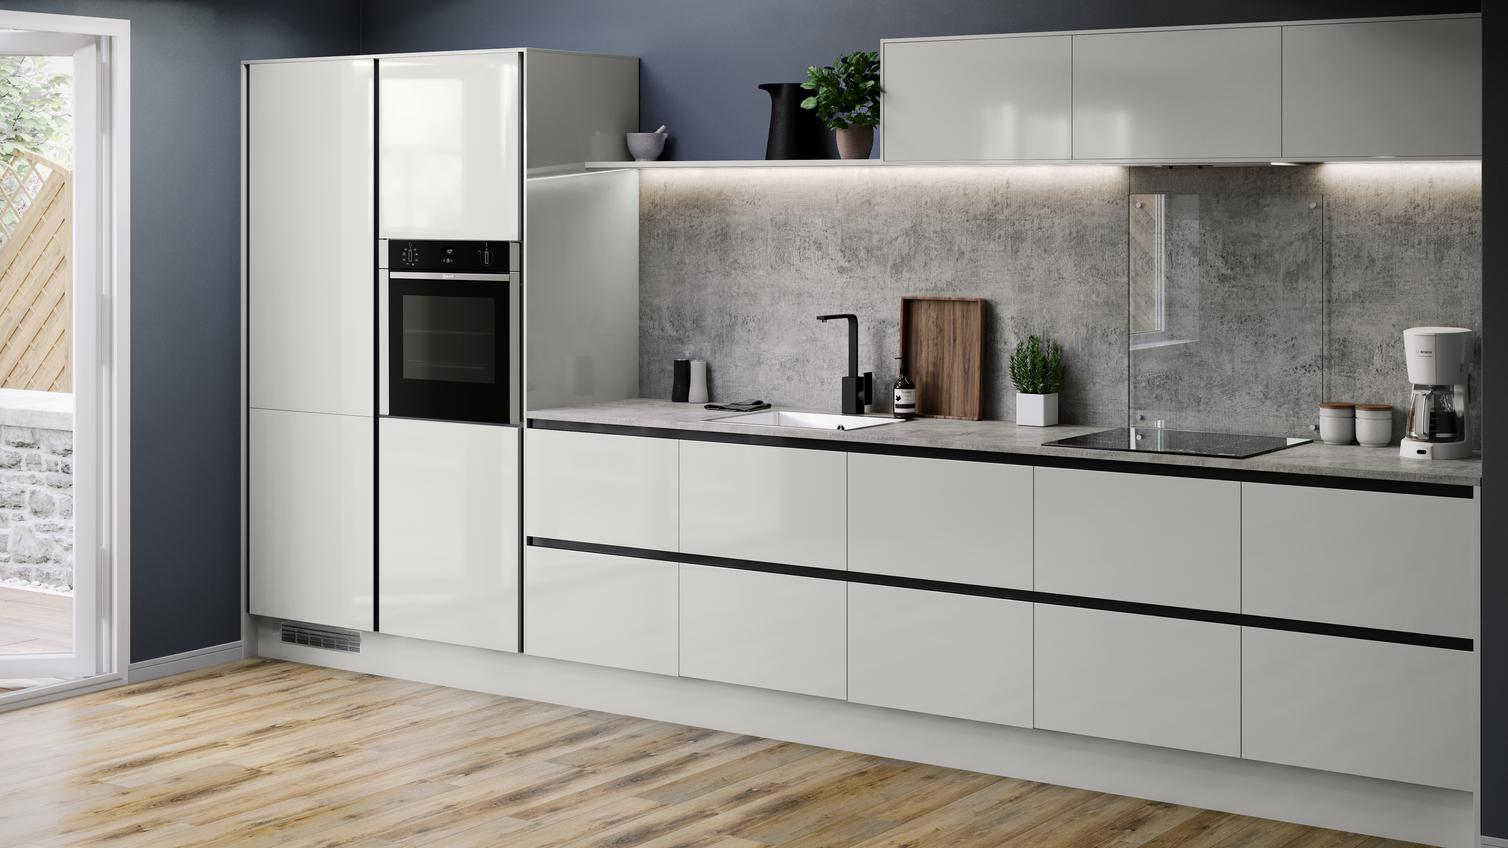 Balham Gloss Dove Grey Kitchen Fitted Kitchens Howdens